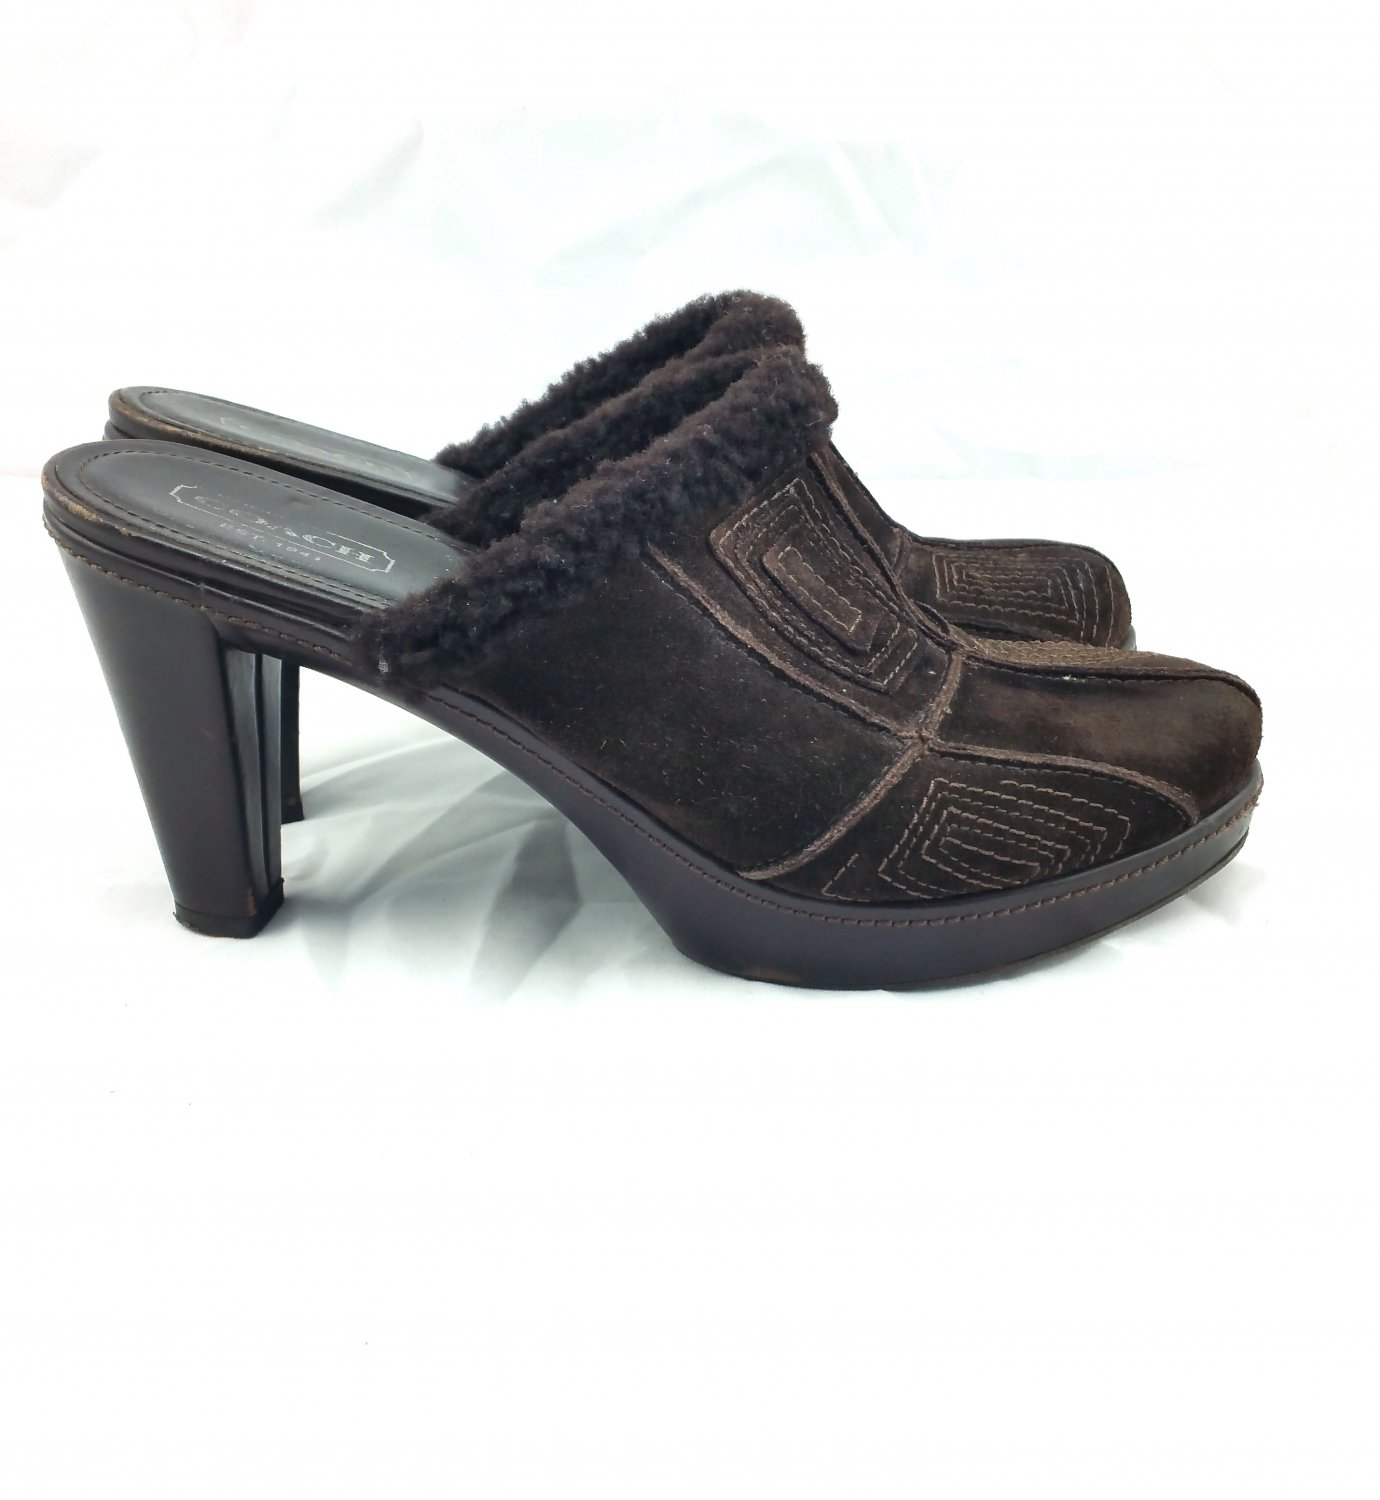 COACH Vintage Brown Suede Leather Clogs Mules Aubrey